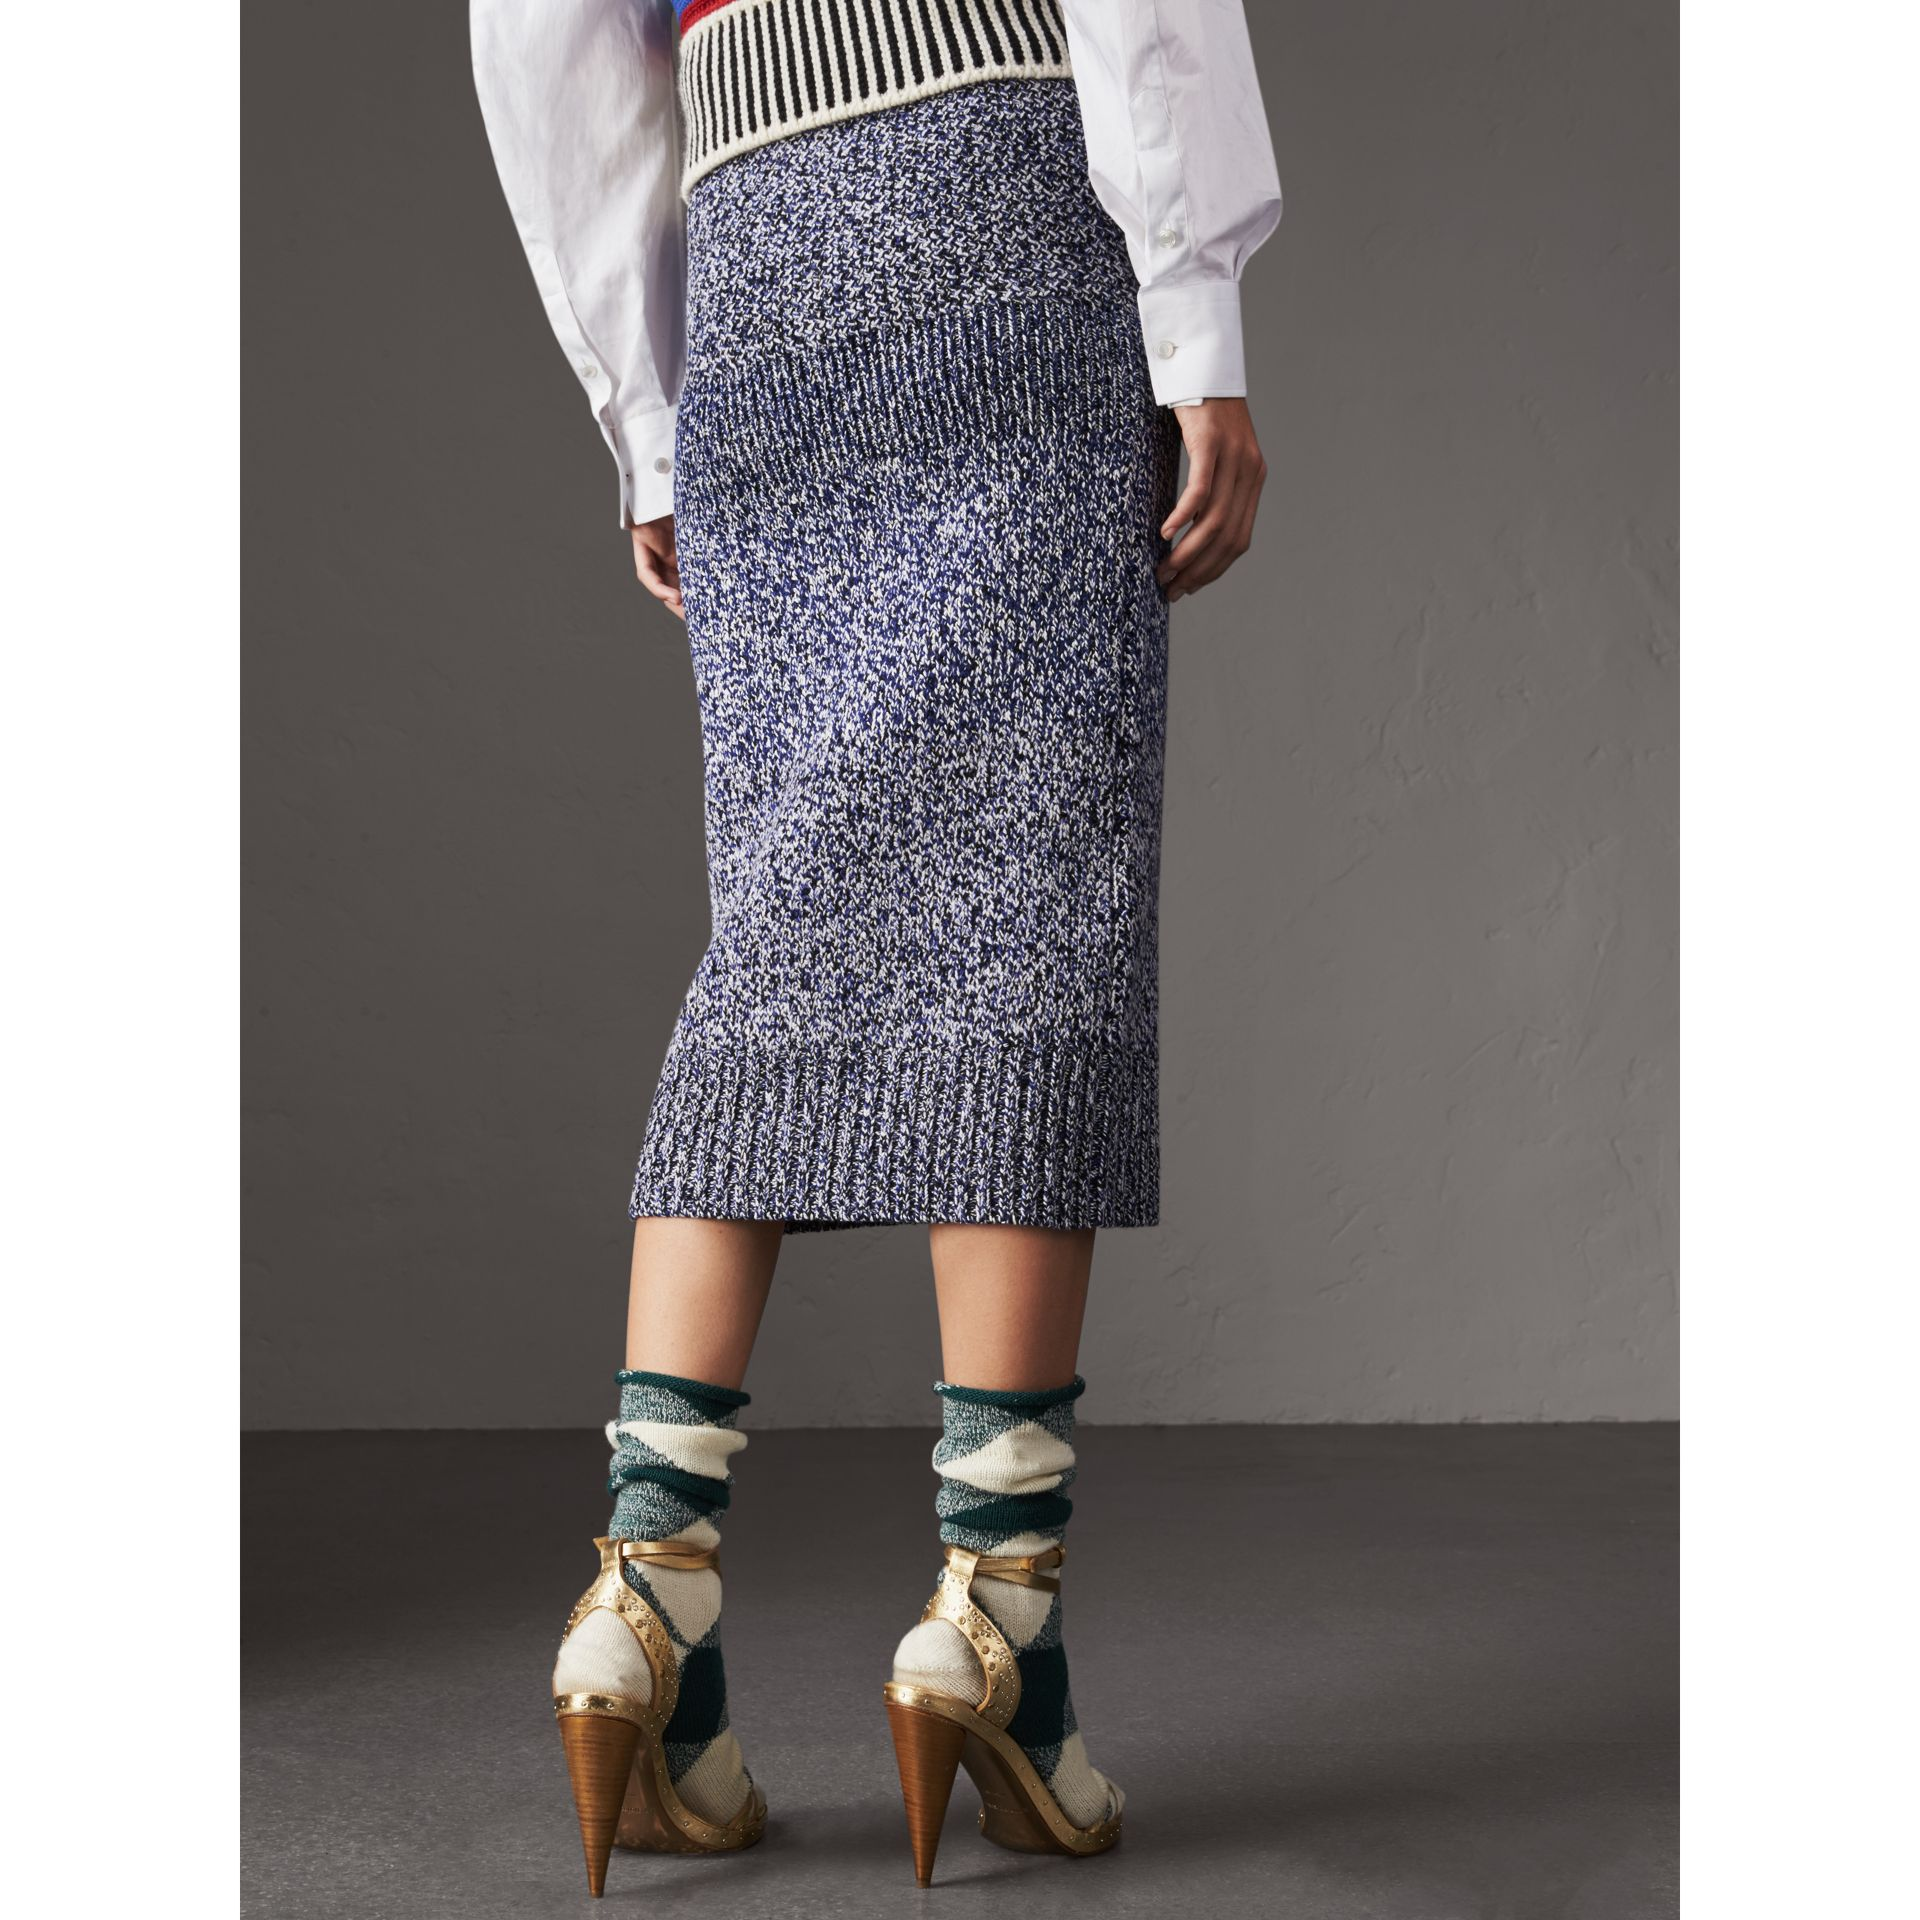 Cashmere Cotton Wool Blend Mouliné Skirt in Bright Navy/black - Women | Burberry - gallery image 3